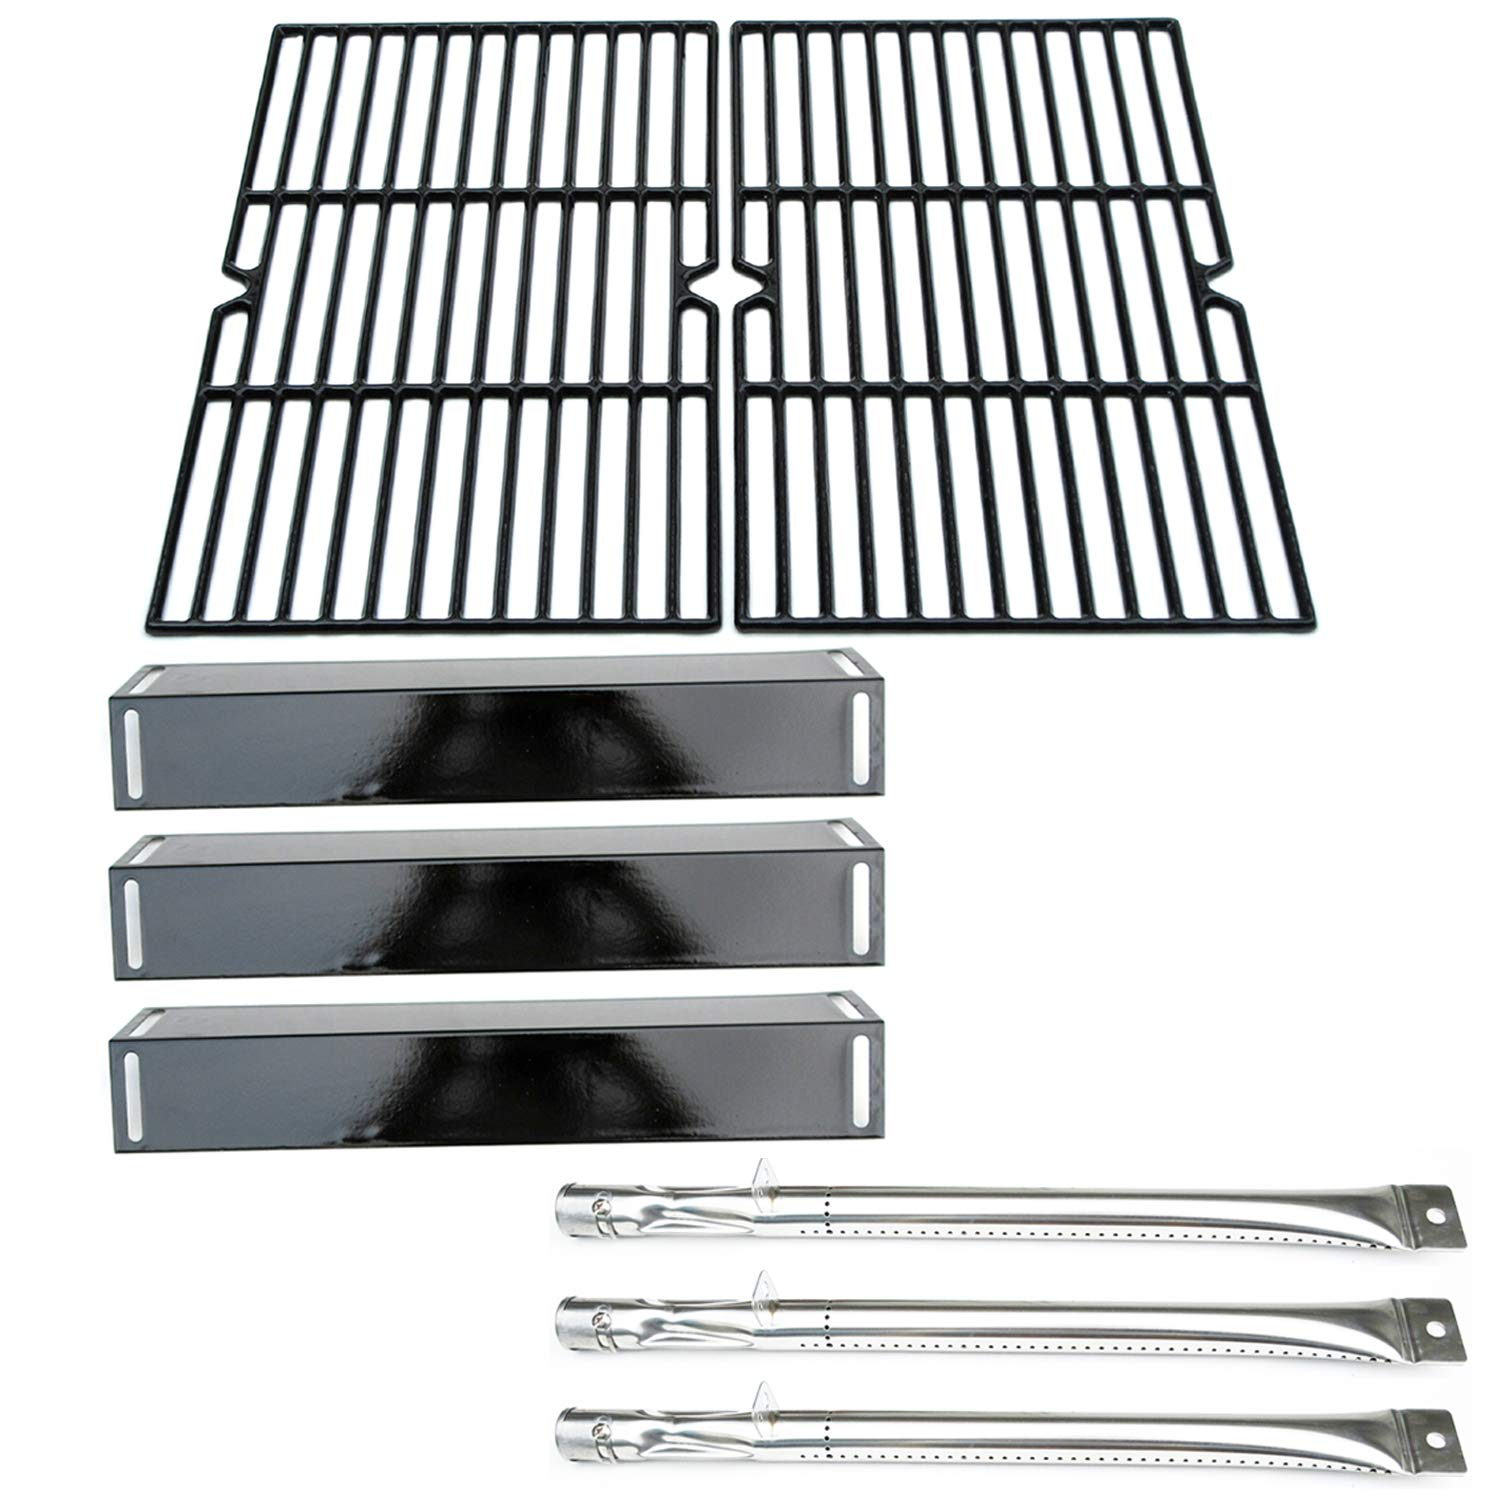 Direct store Parts Kit DG118 Replacement BBQ Grillware GGPL-2100 Gas Grill Burners, Heat Plates, Cooking grids